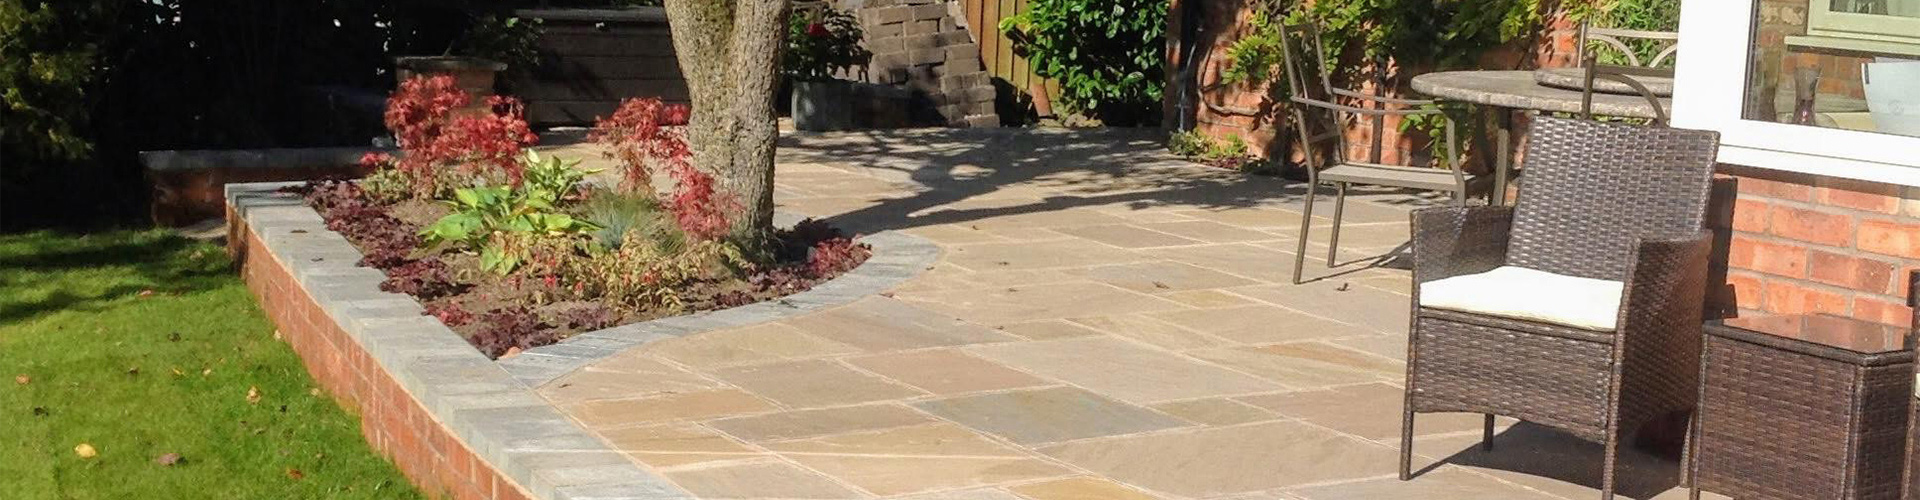 Landscaping Services Biddulph & Congleton Cheshire